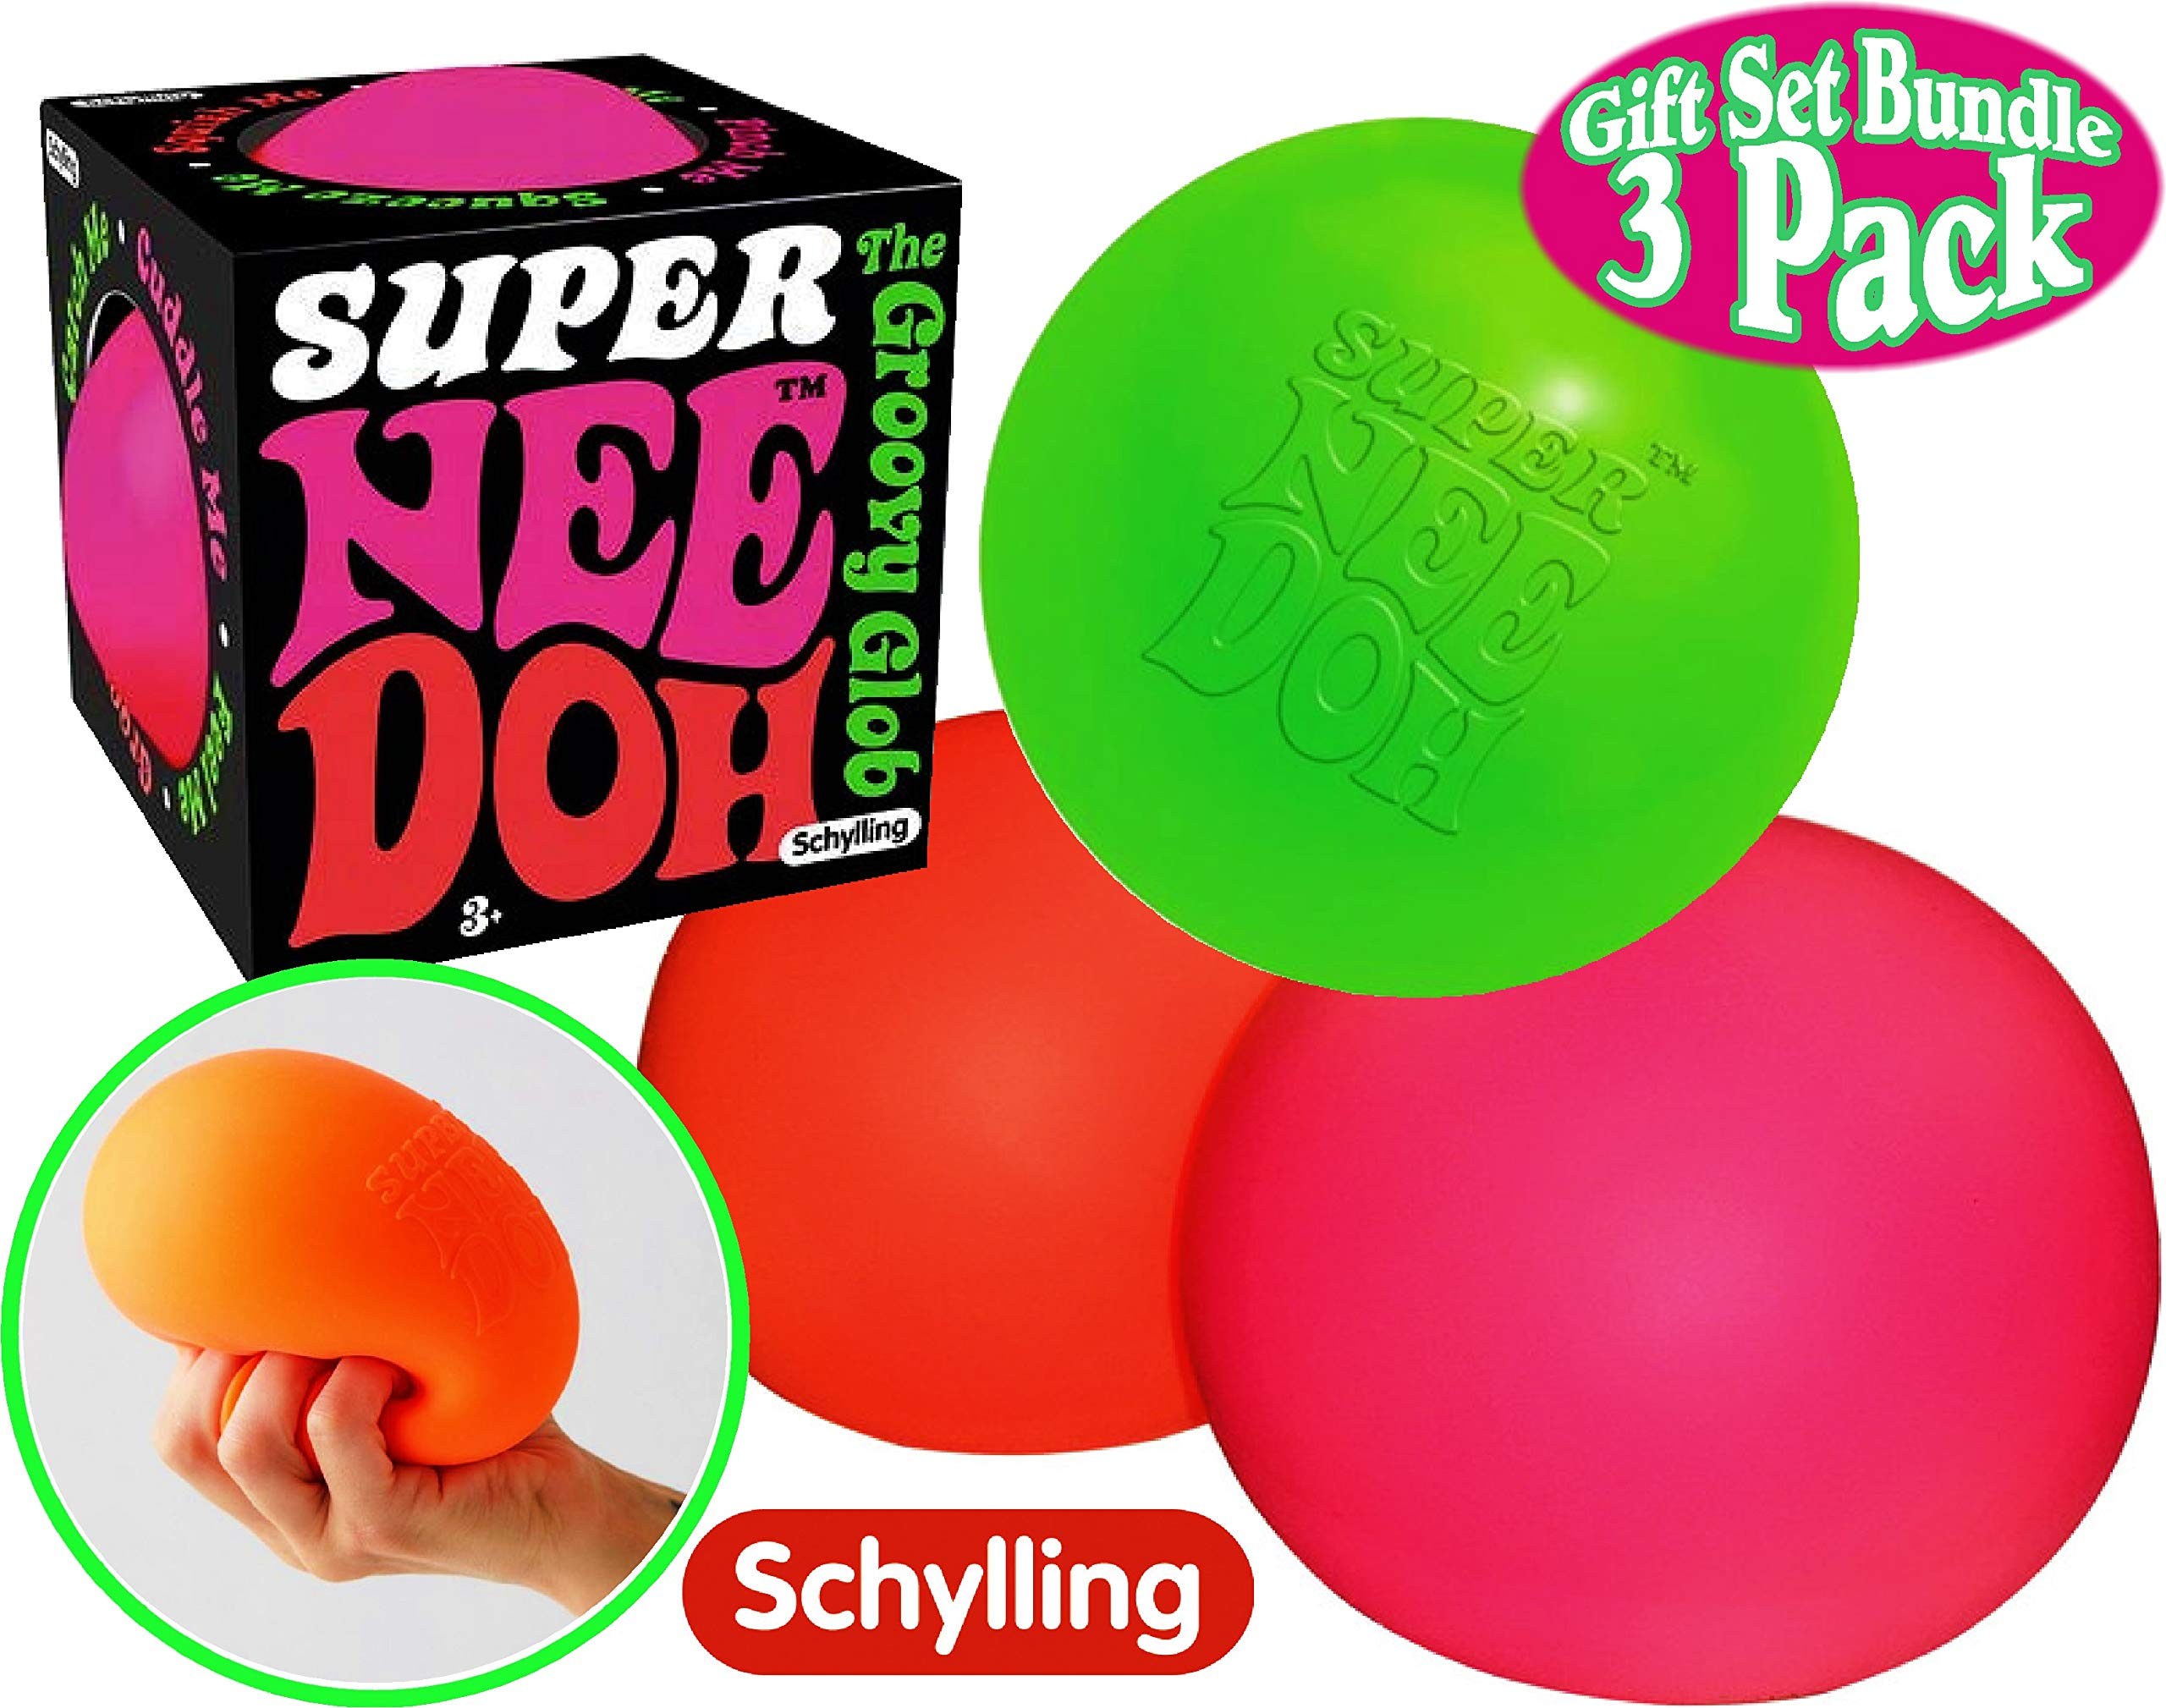 Schylling Super NeeDoh The 4.5'' Groovy Glob! Squishy, Squeezy, Stretchy Stress Balls Green, Orange & Pink Complete Gift Set Bundle - 3 Pack by Schylling